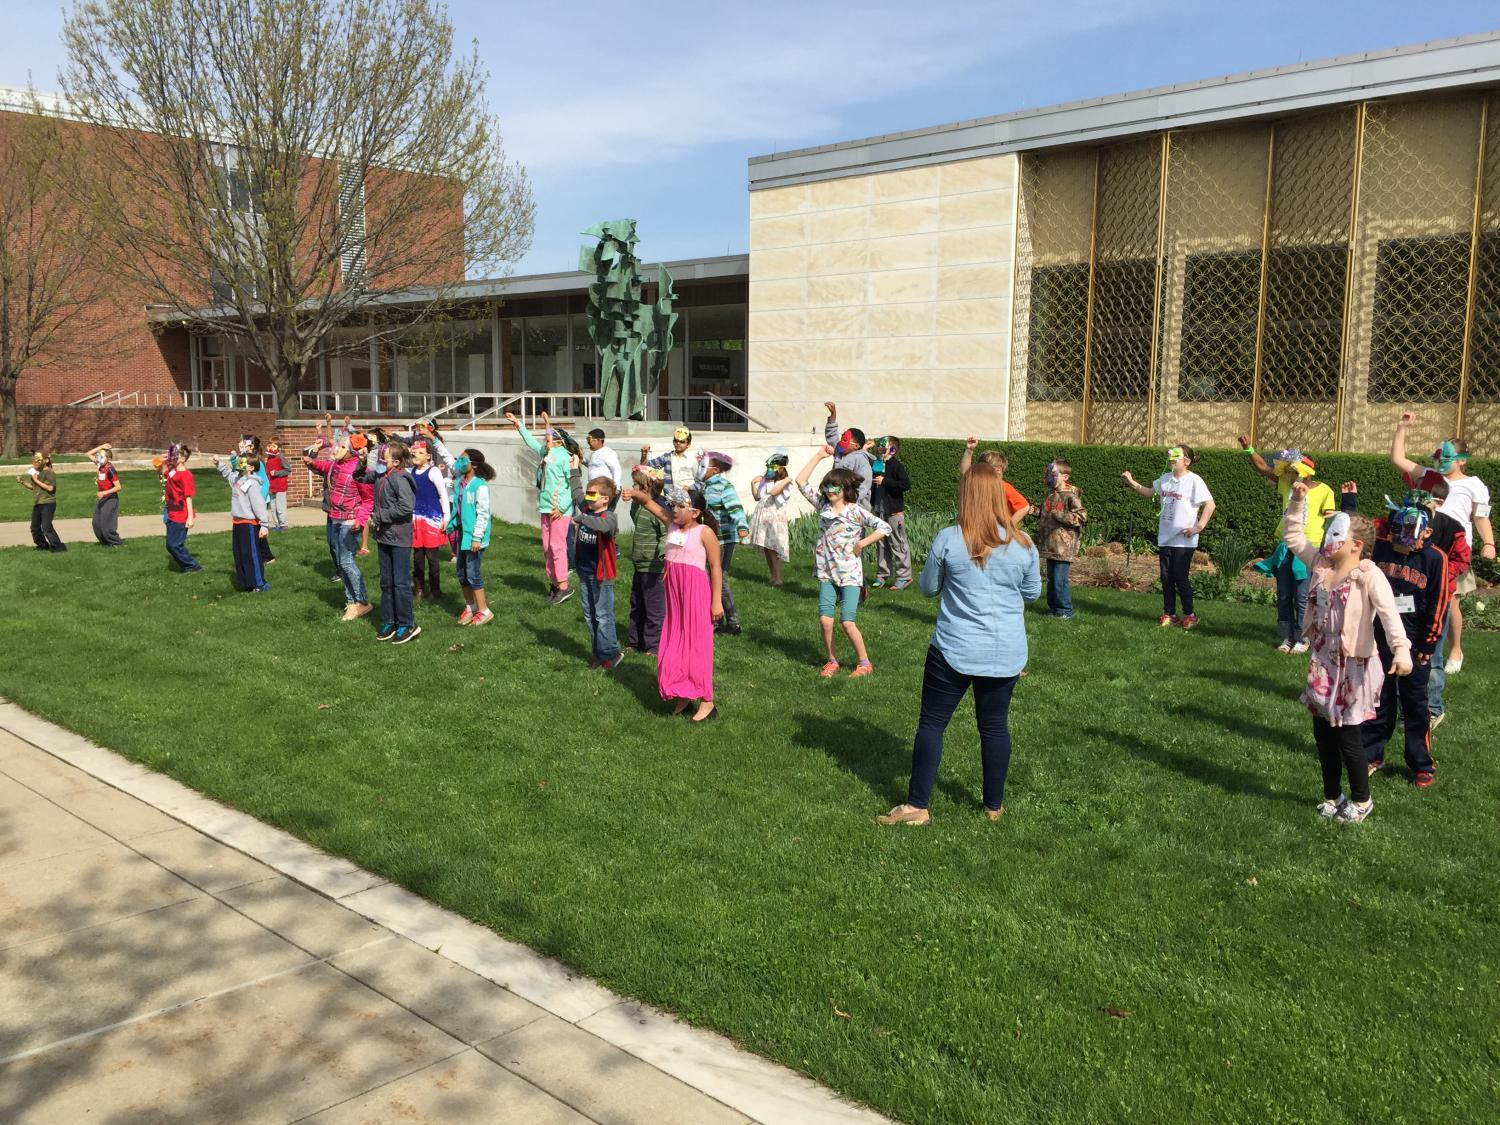 Students from Krannert Art Museum–Week at the Museum use the museum gardens as space to explore movement, 2015